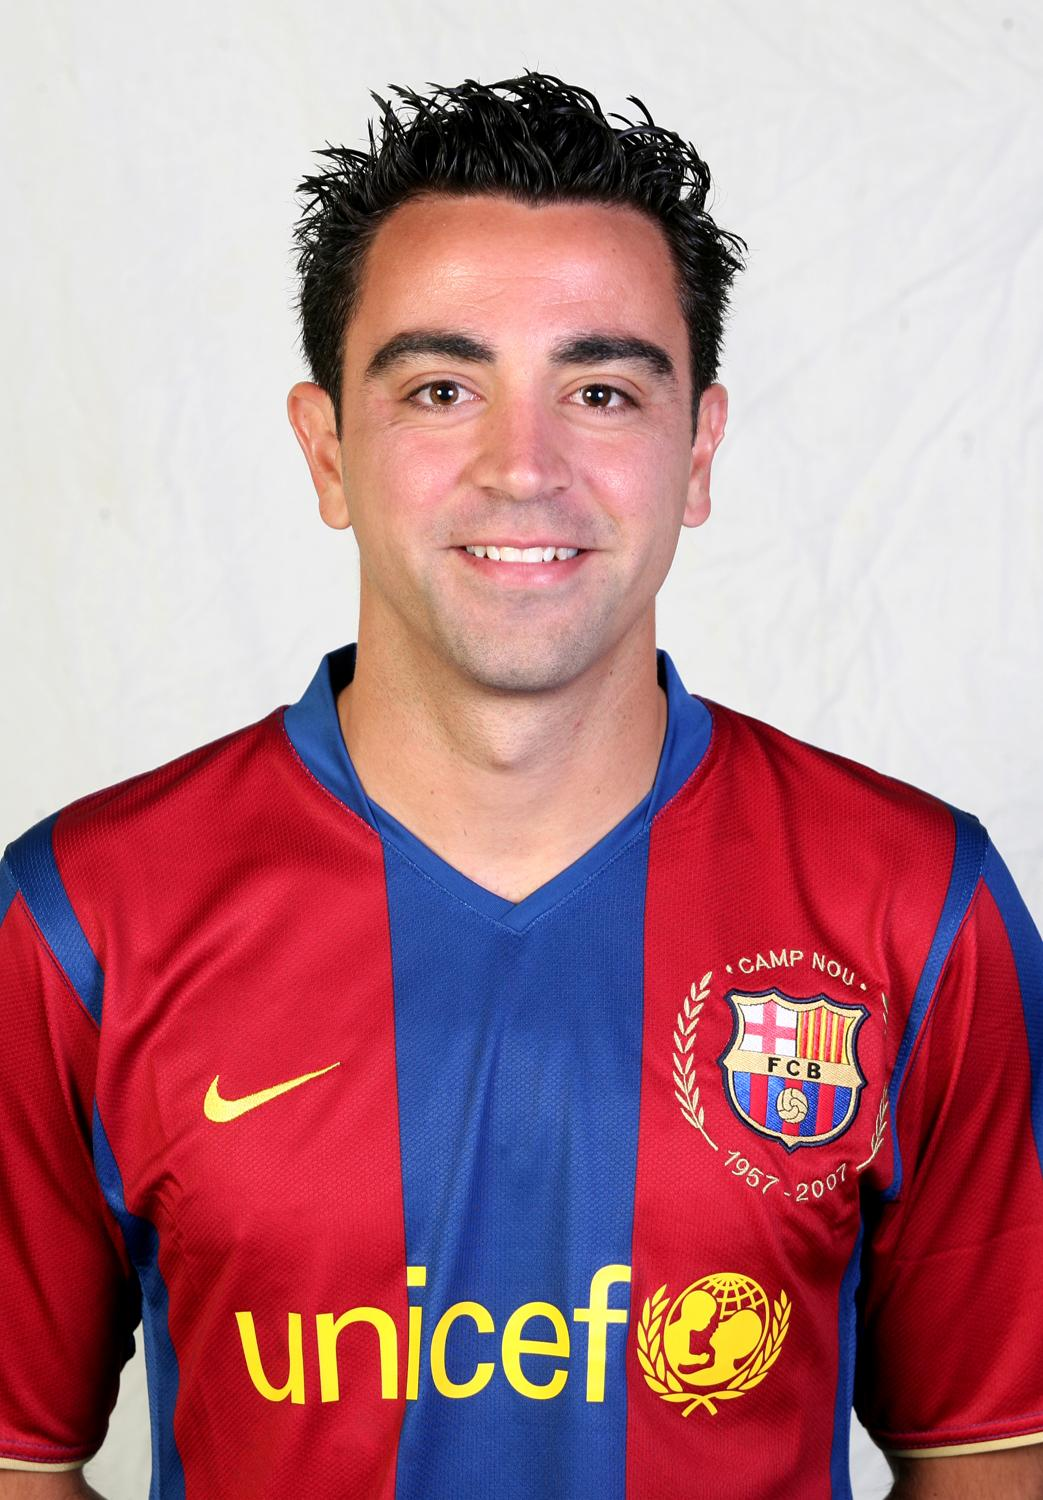 hairstyles for men: Xavi Hernandez Hairstyle - Xavi Hernandez